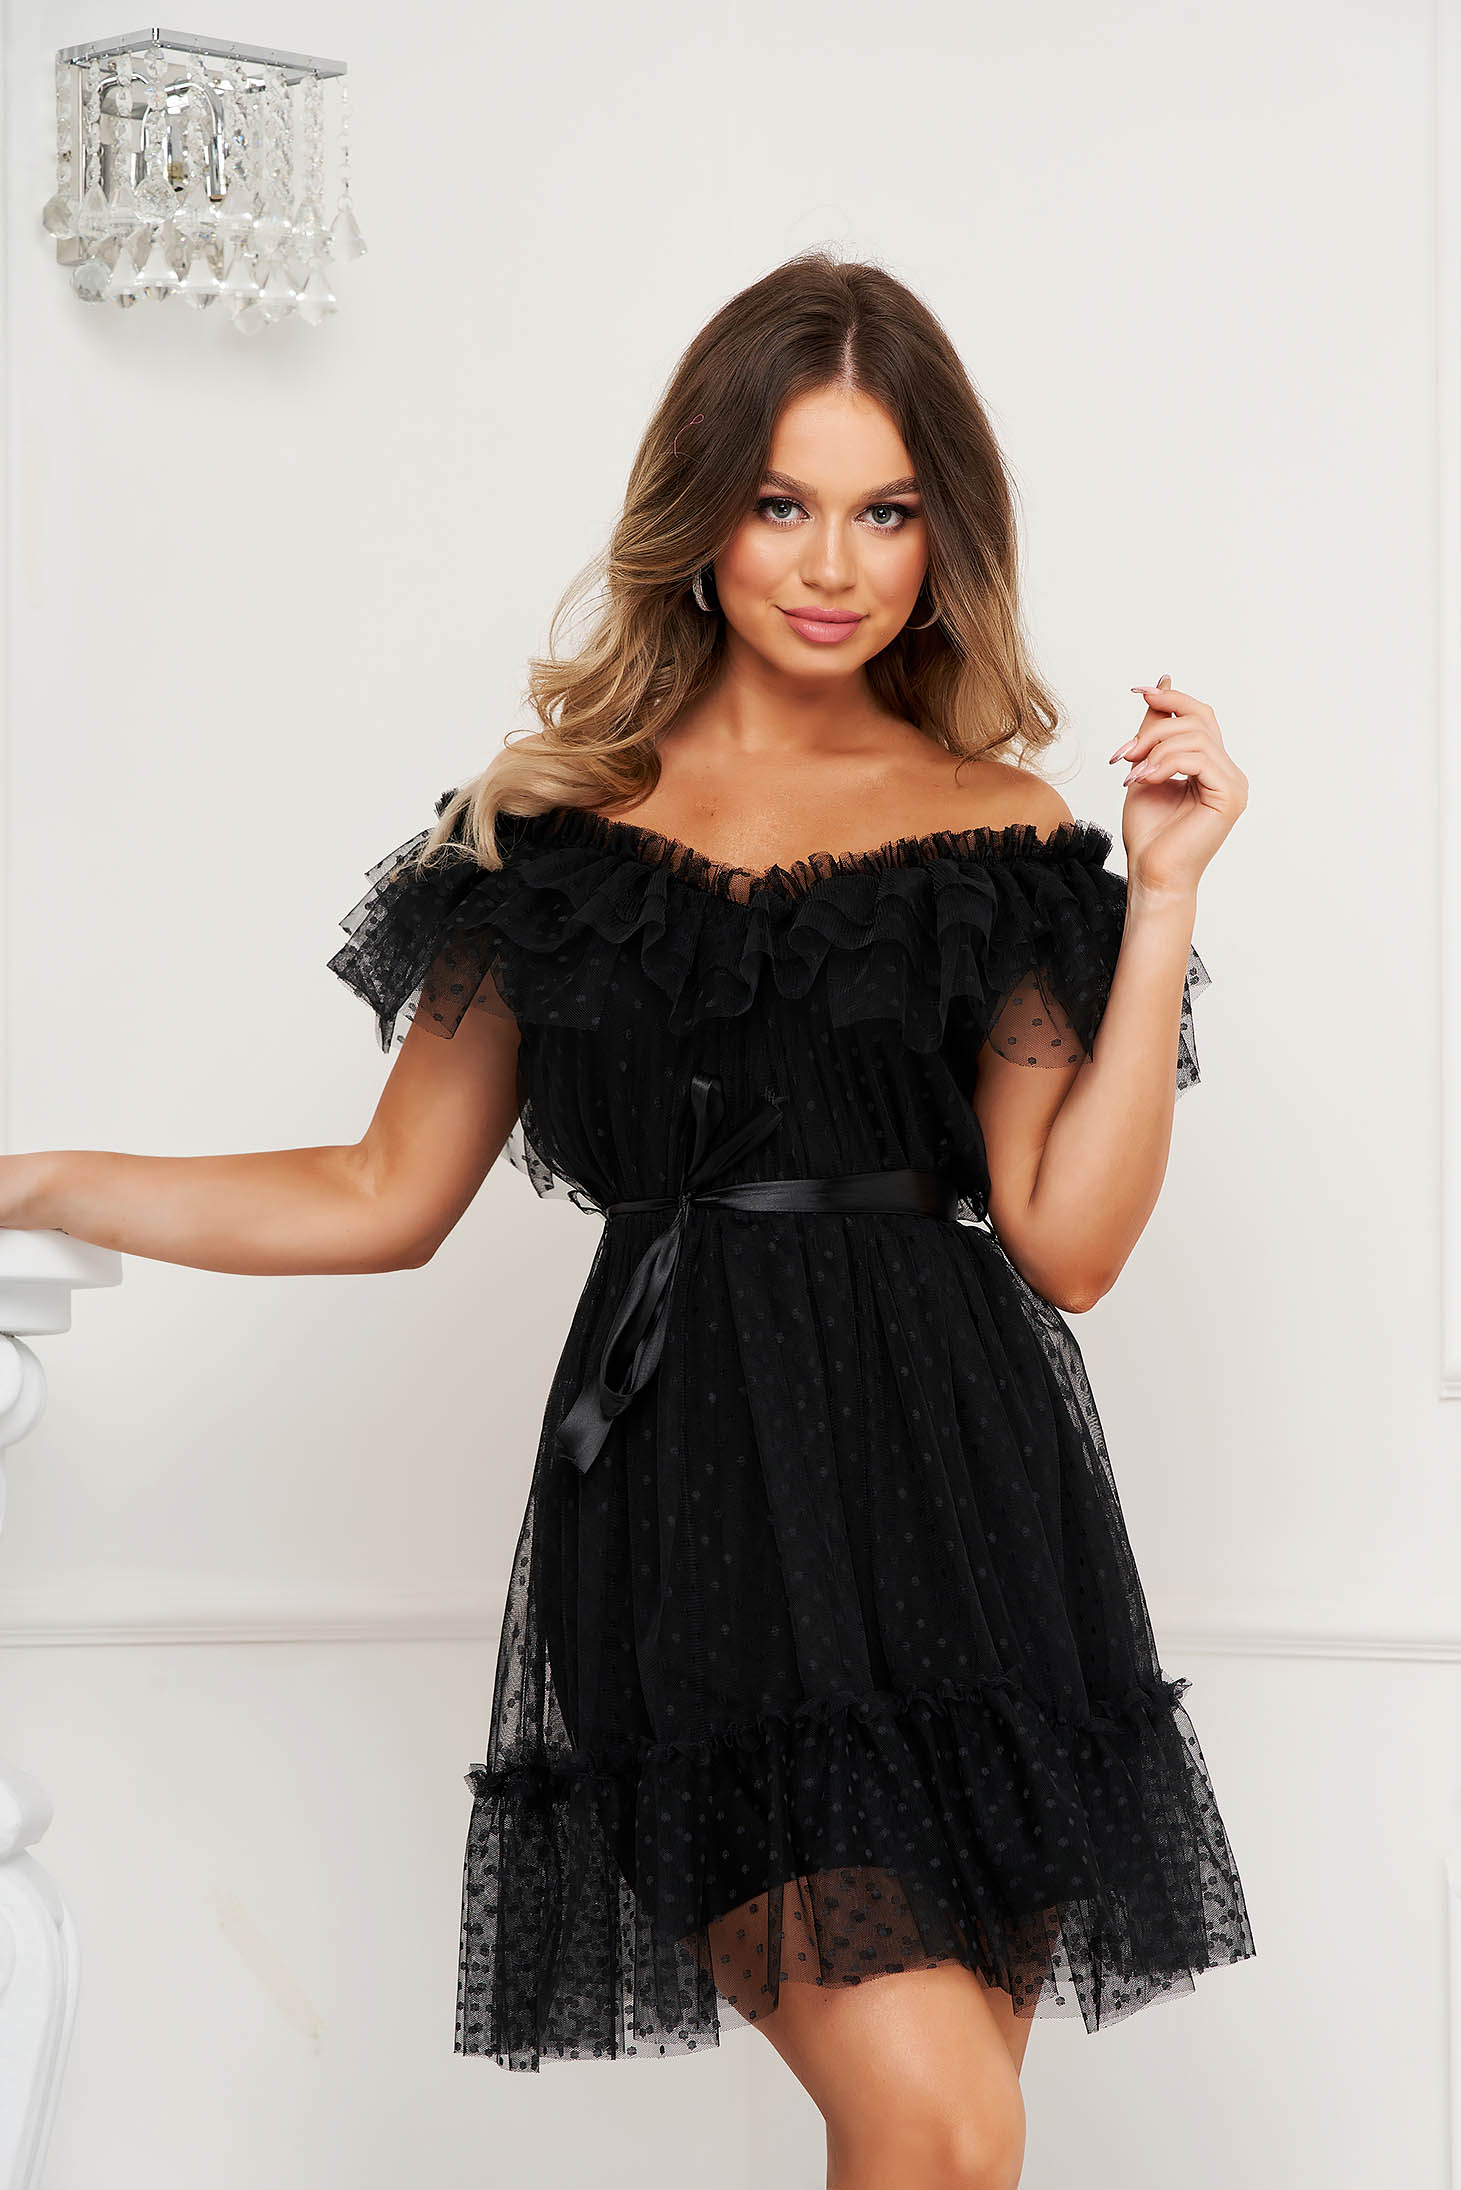 Black dress from tulle cloche with elastic waist plumeti on the shoulders accessorized with tied waistband occasional